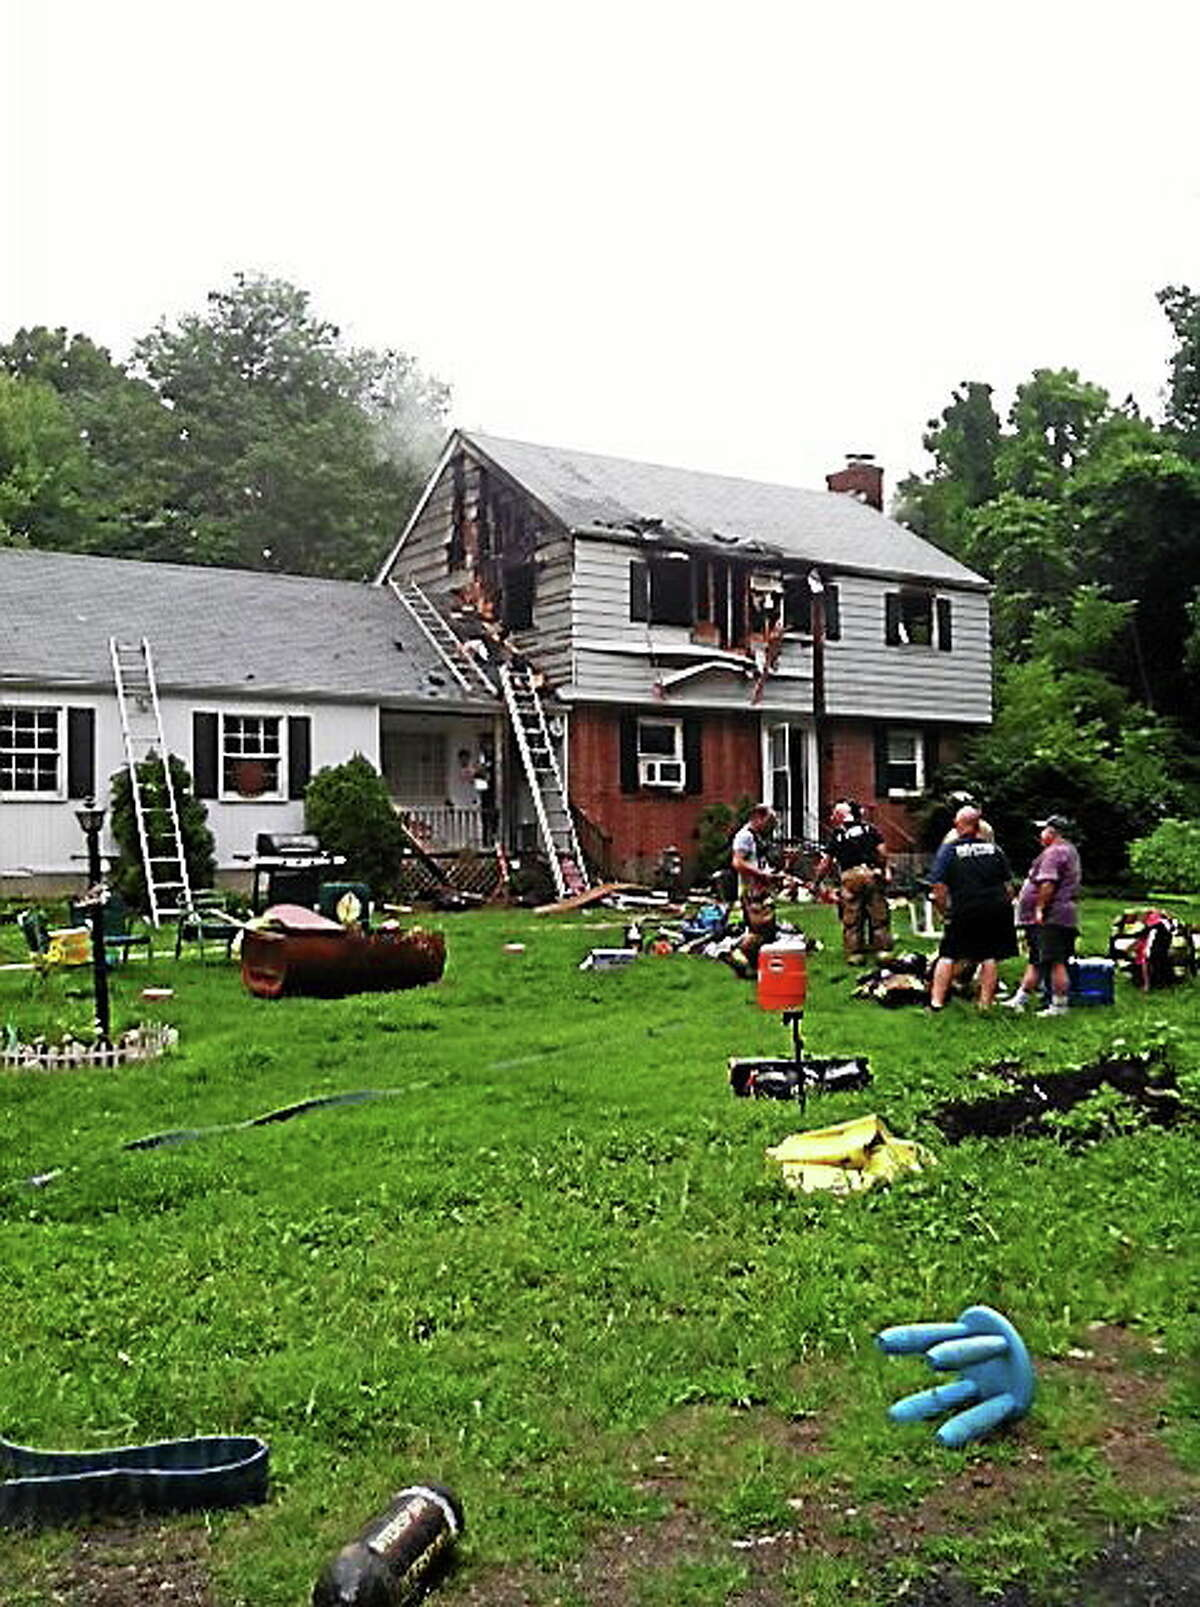 208 Cedarhurst Lane in Milford, which was severely damaged by fire Saturday evening.